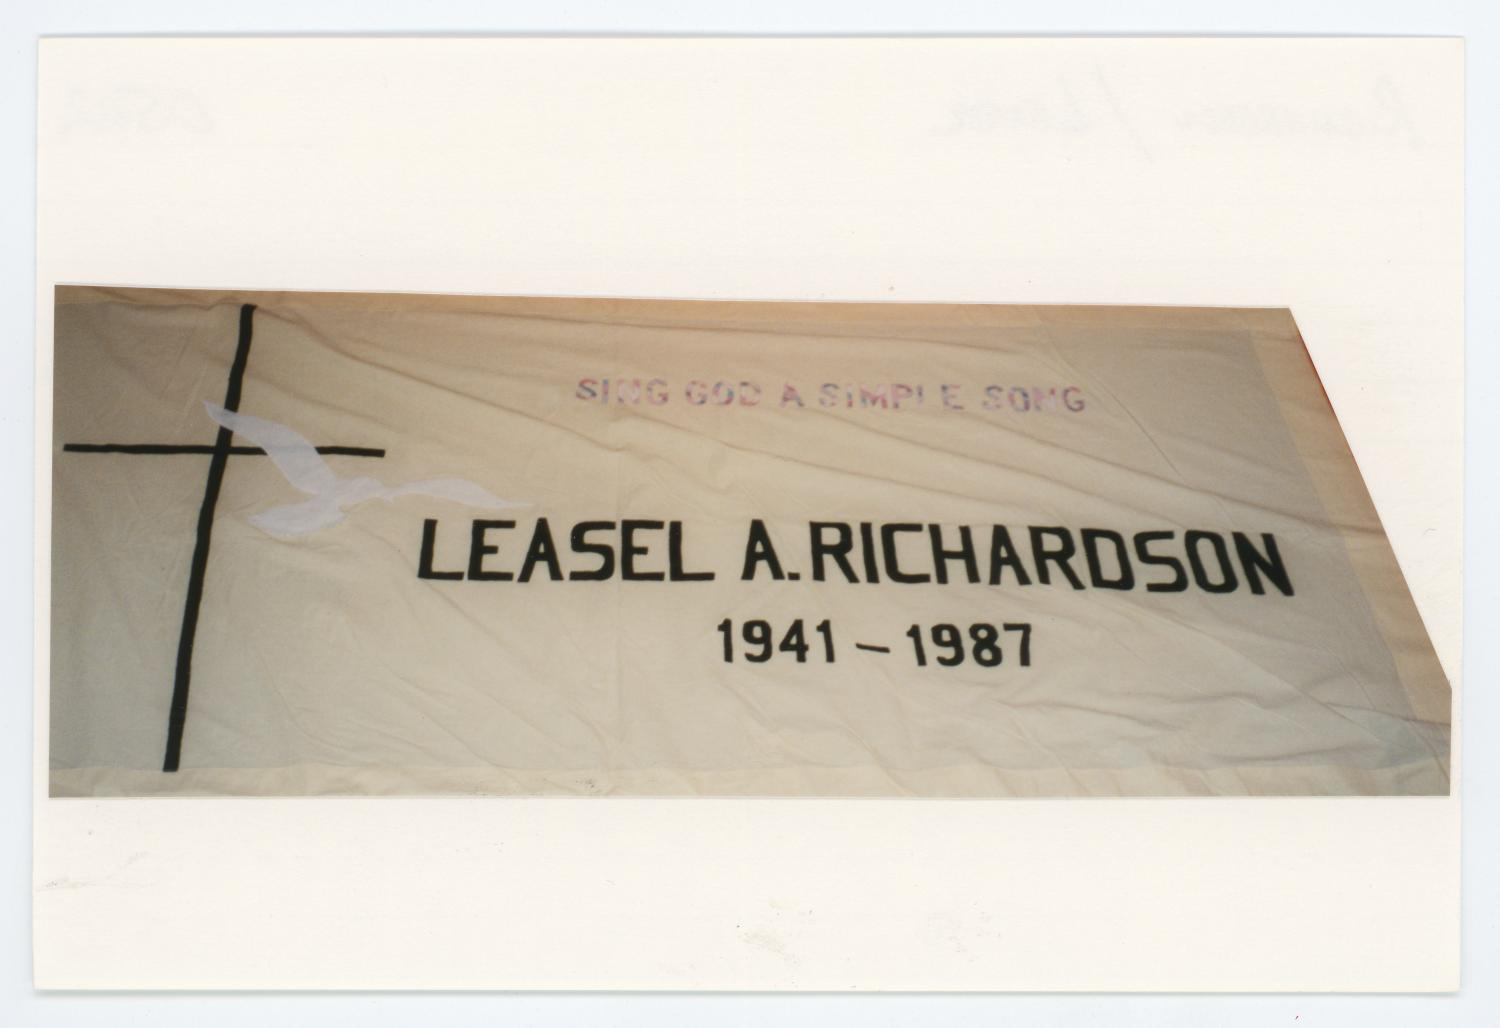 """[AIDS Memorial Quilt Panel for Leasel A. Richardson], Photograph of AIDS Memorial Quilt Panel for Leasel A. Richardson. Block number is 0502. Photograph of quilt has been cropped and mounted to a 4"""" x 6"""" index card.,"""